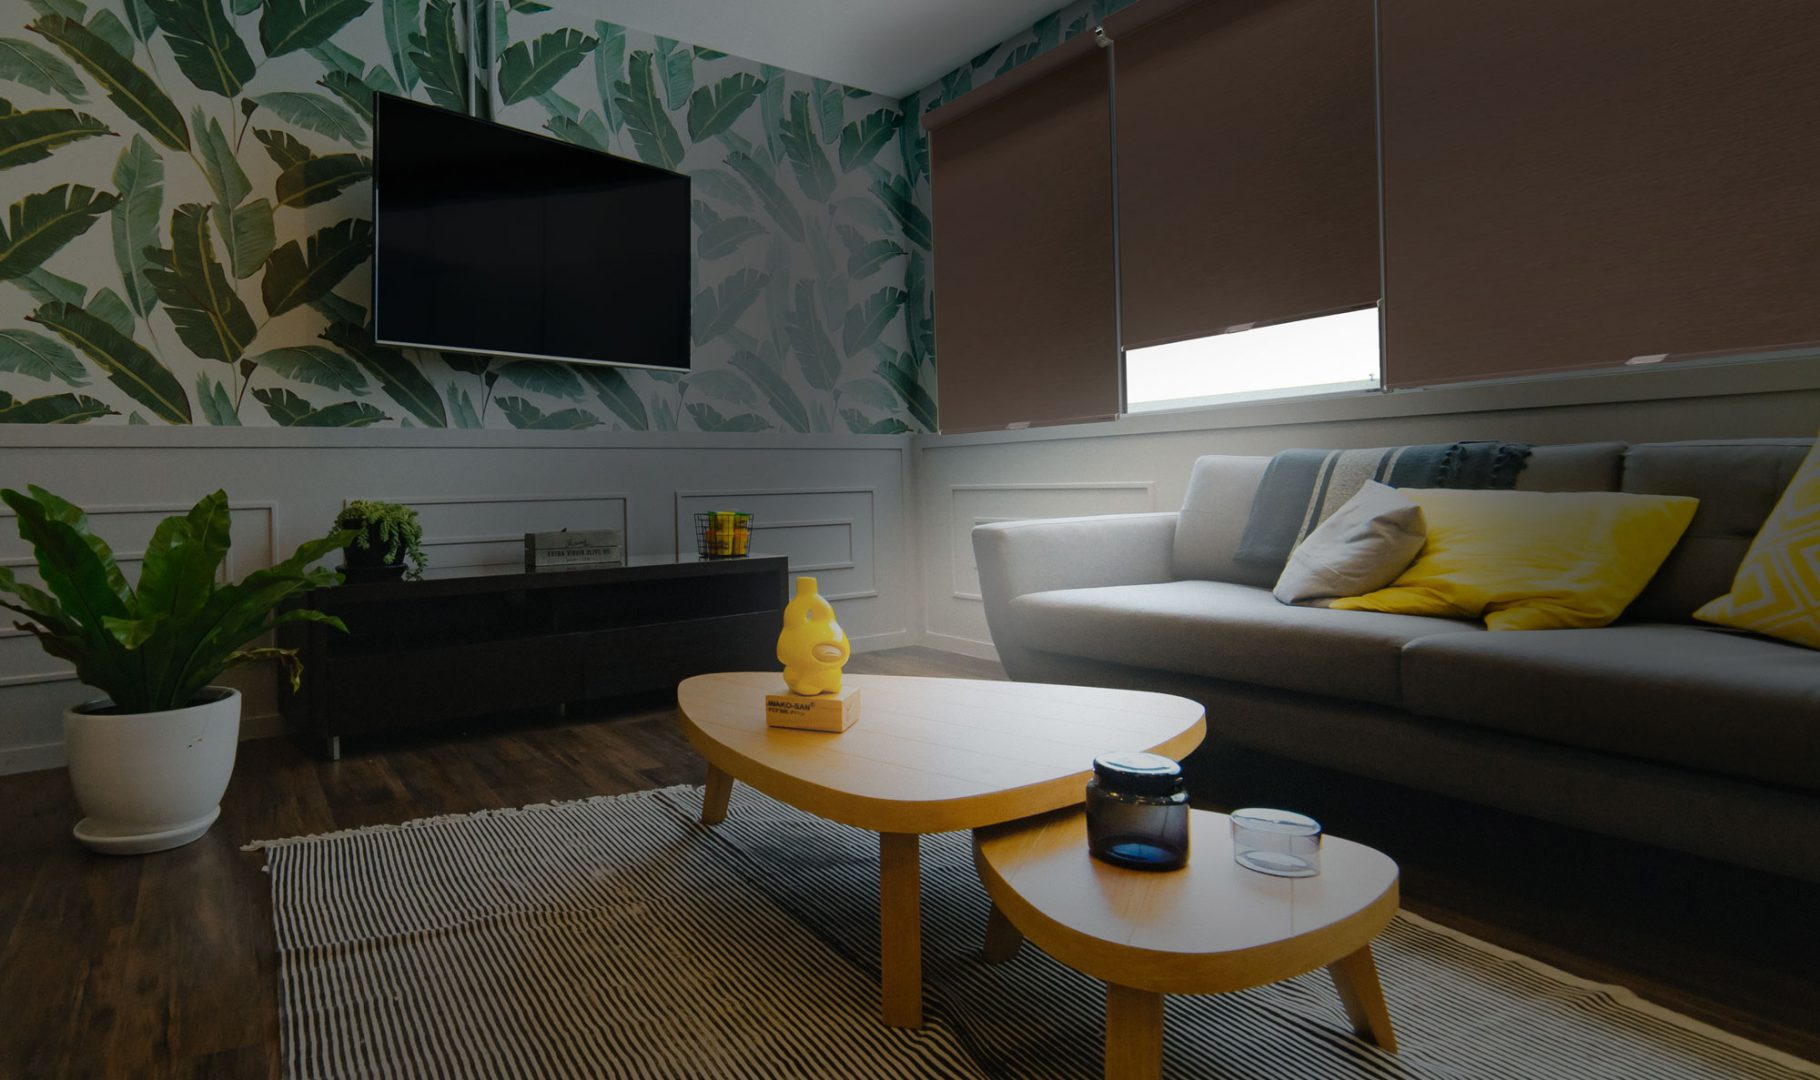 Blackout fabrics make sure shades keep a room dark and protect your privacy.